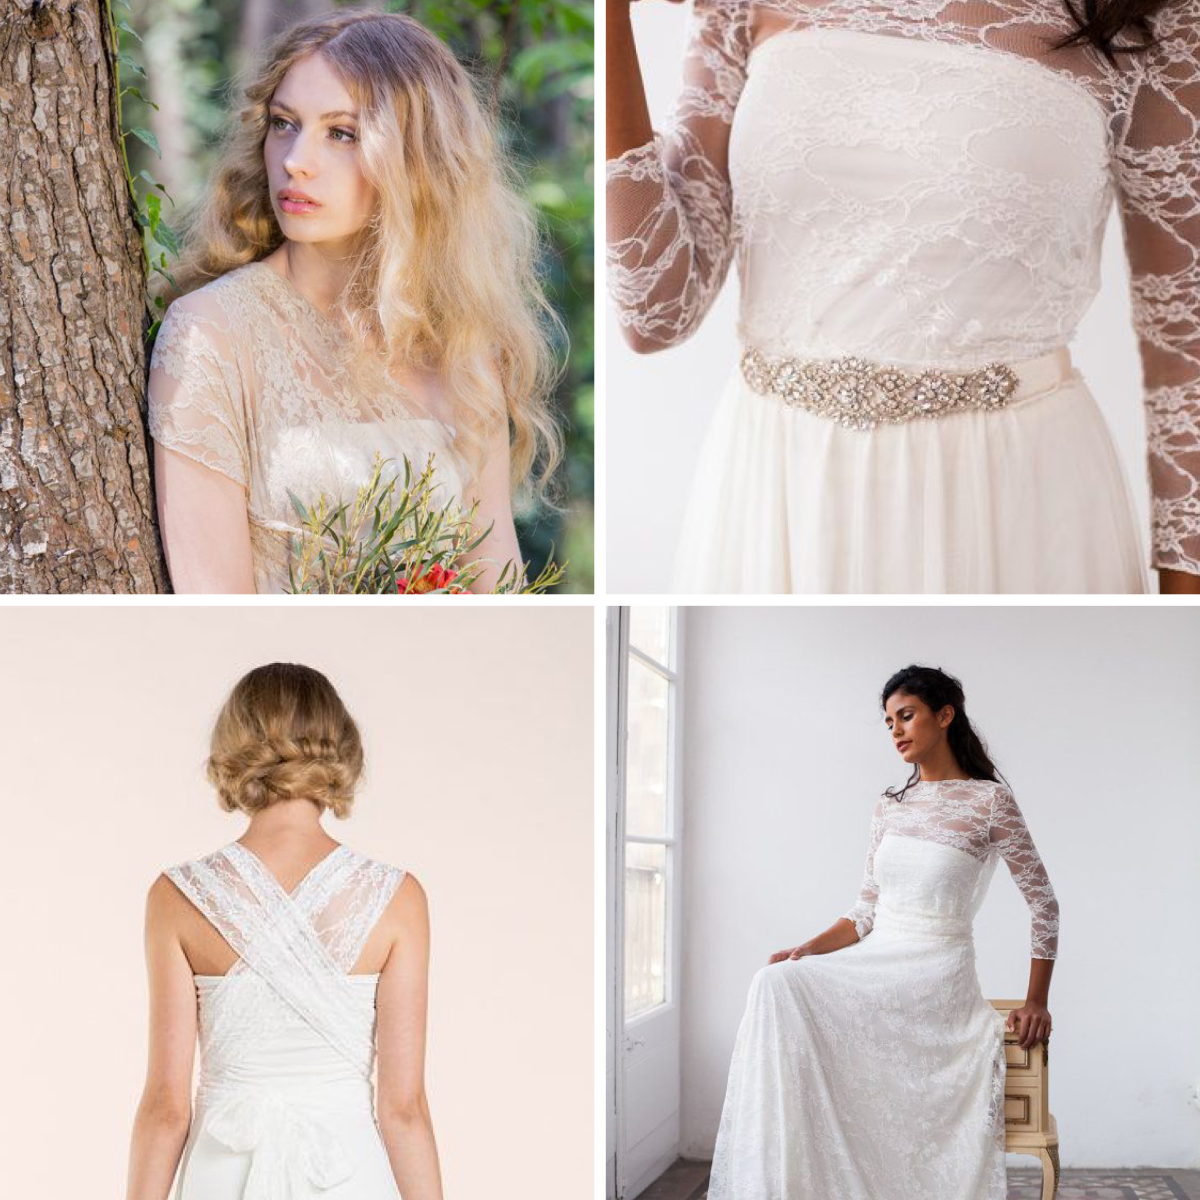 1. Gown, $266 / 2. Sash, $59 / 3. Short Dress, $266 / 4. Lace Gown, $480